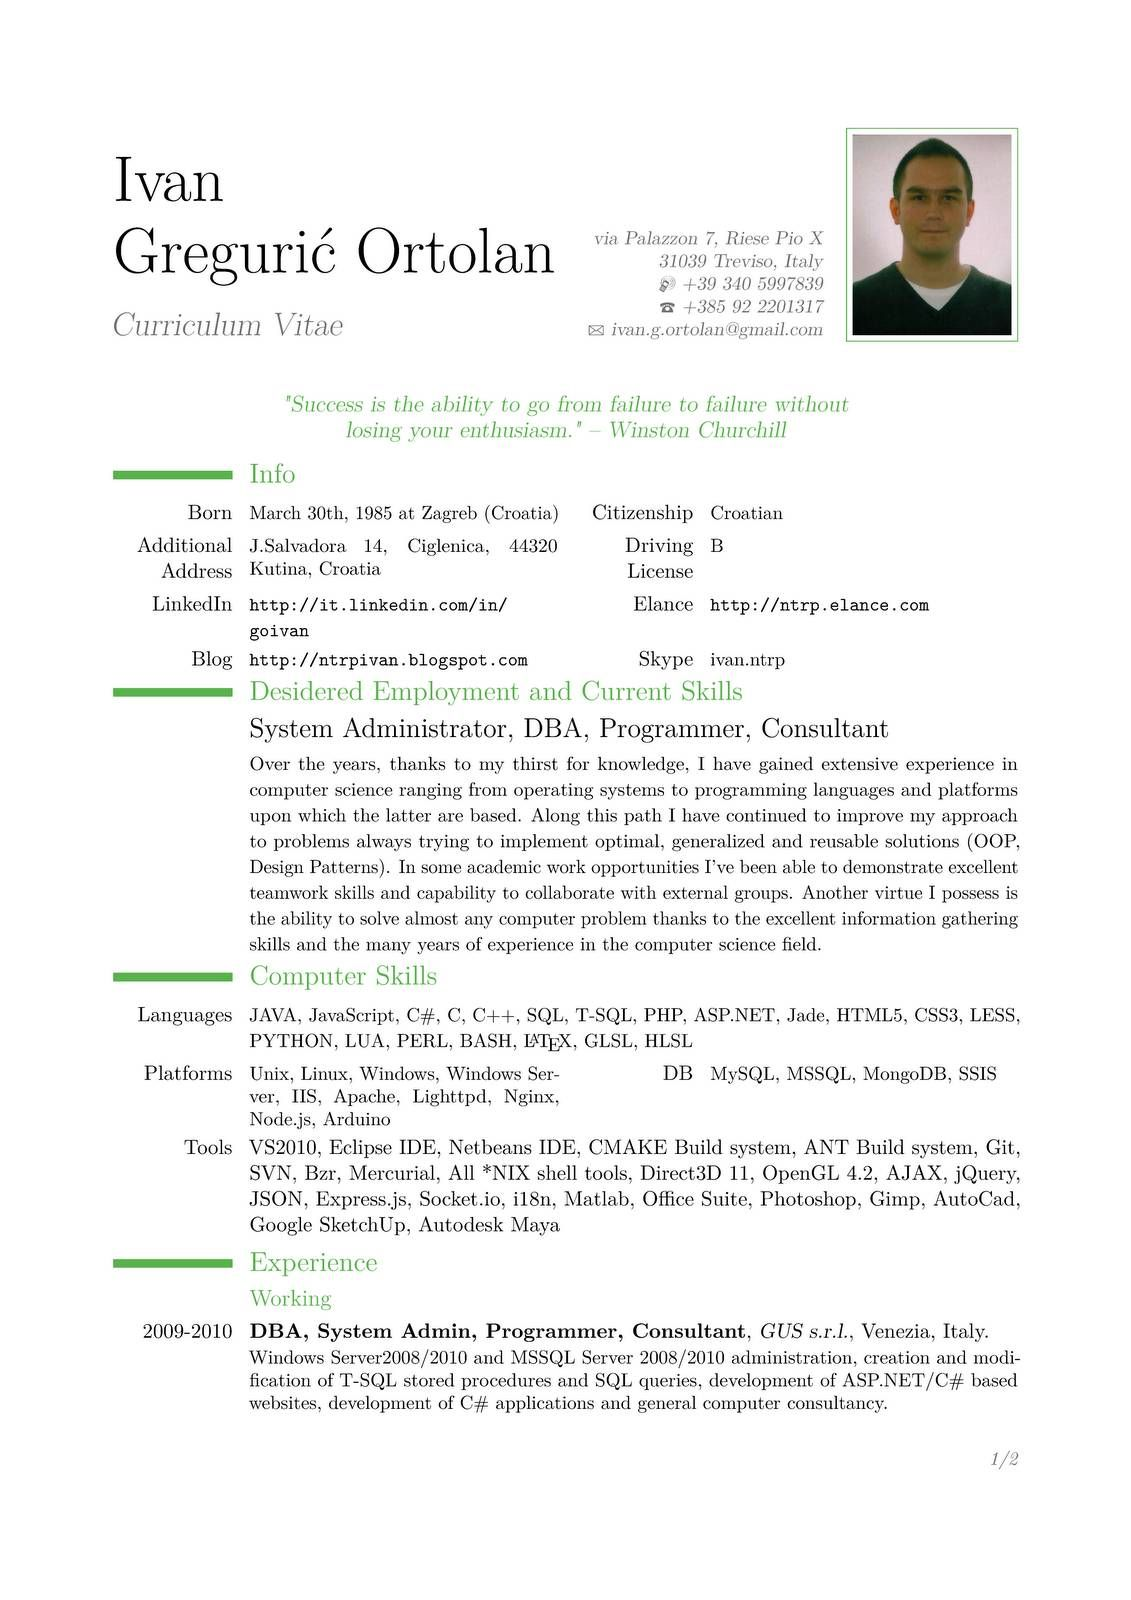 Chronological Resume Template Example Chronological Resume Additional Skills Doc For Job